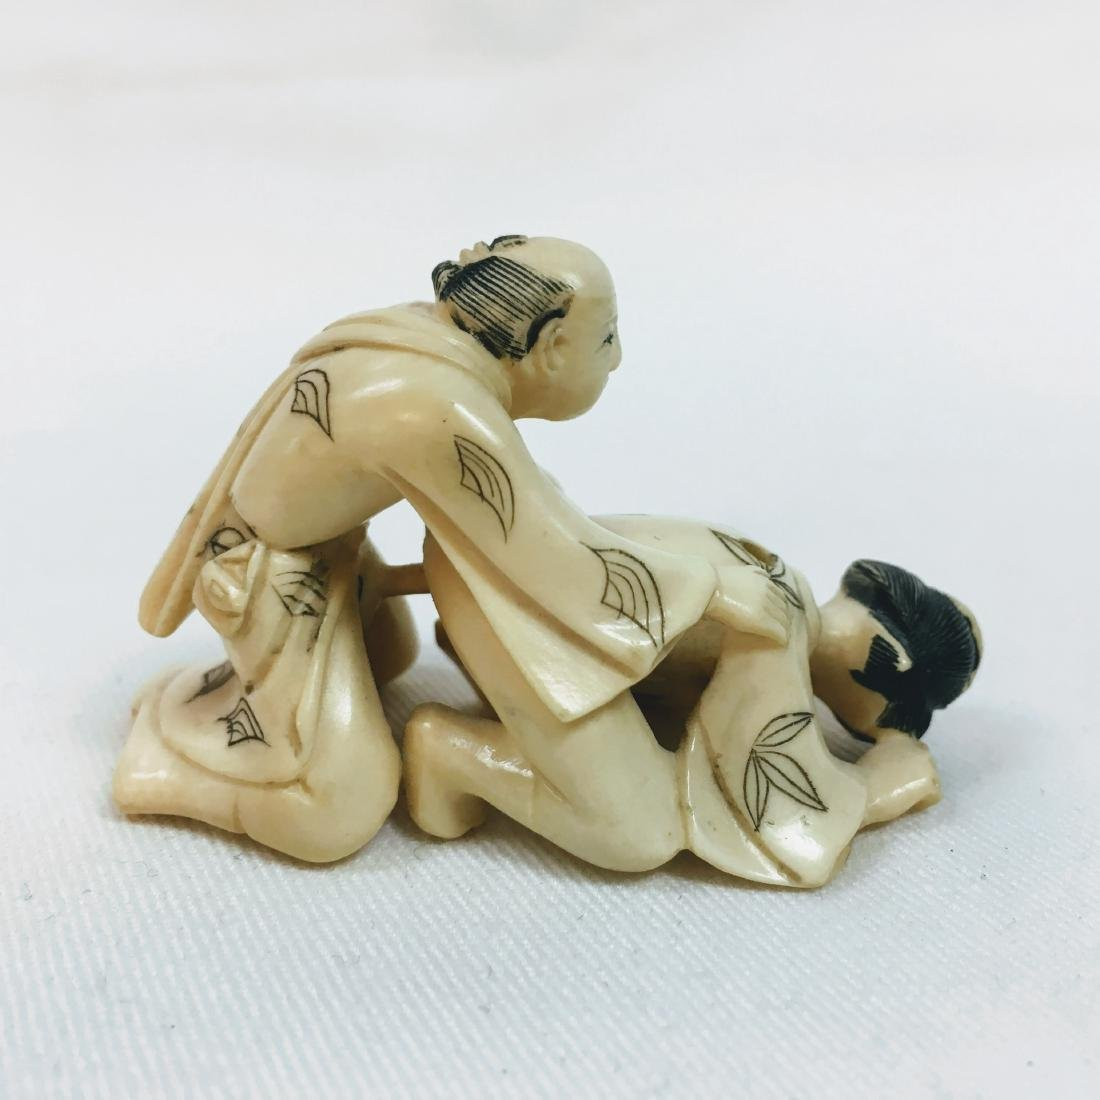 19th Century Erotic Netsuke figure